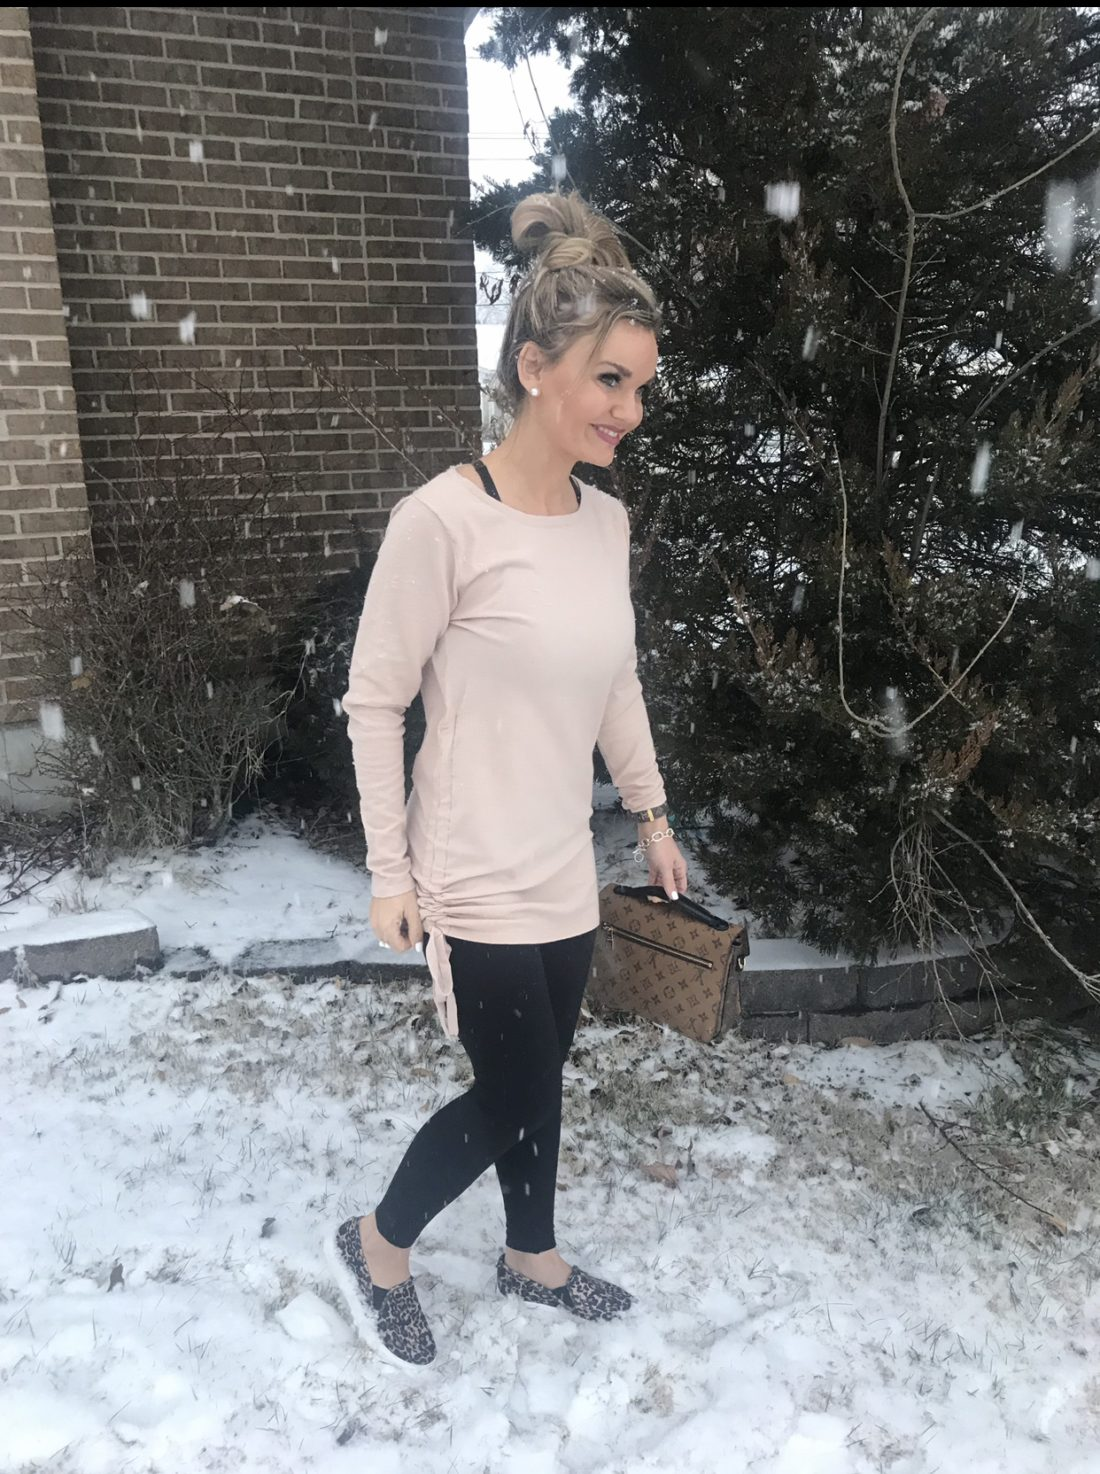 Casual tunic top from Amazon, leggings and leopard slip-on shoes.